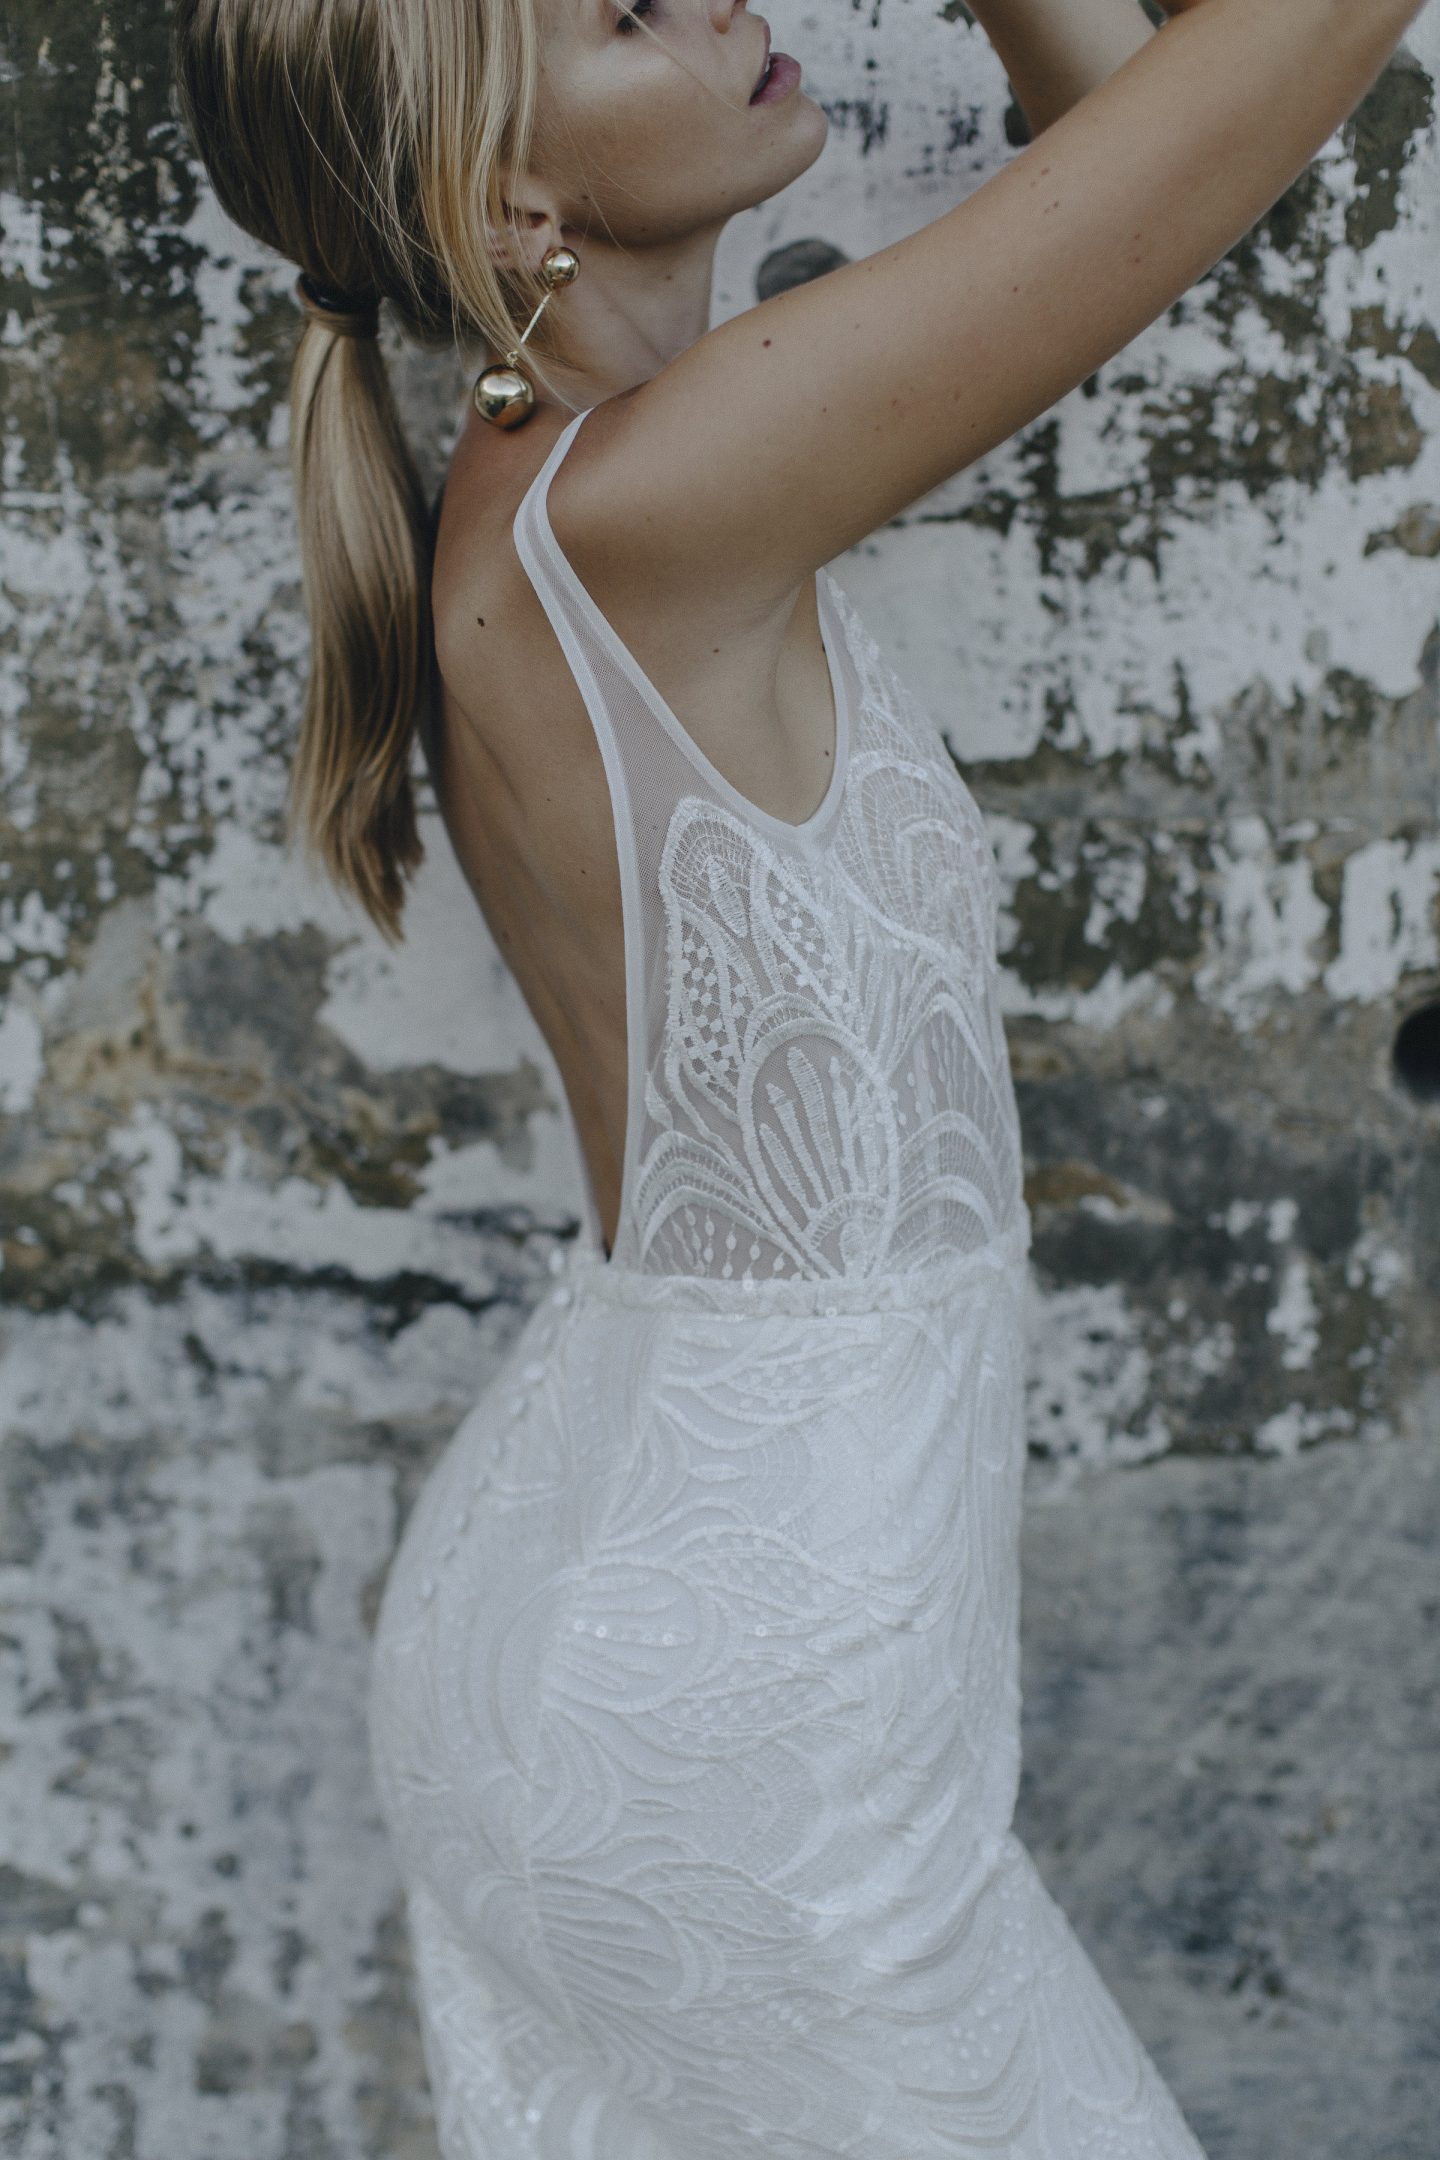 Made with Love at Unbridaled - The Wedding Collective